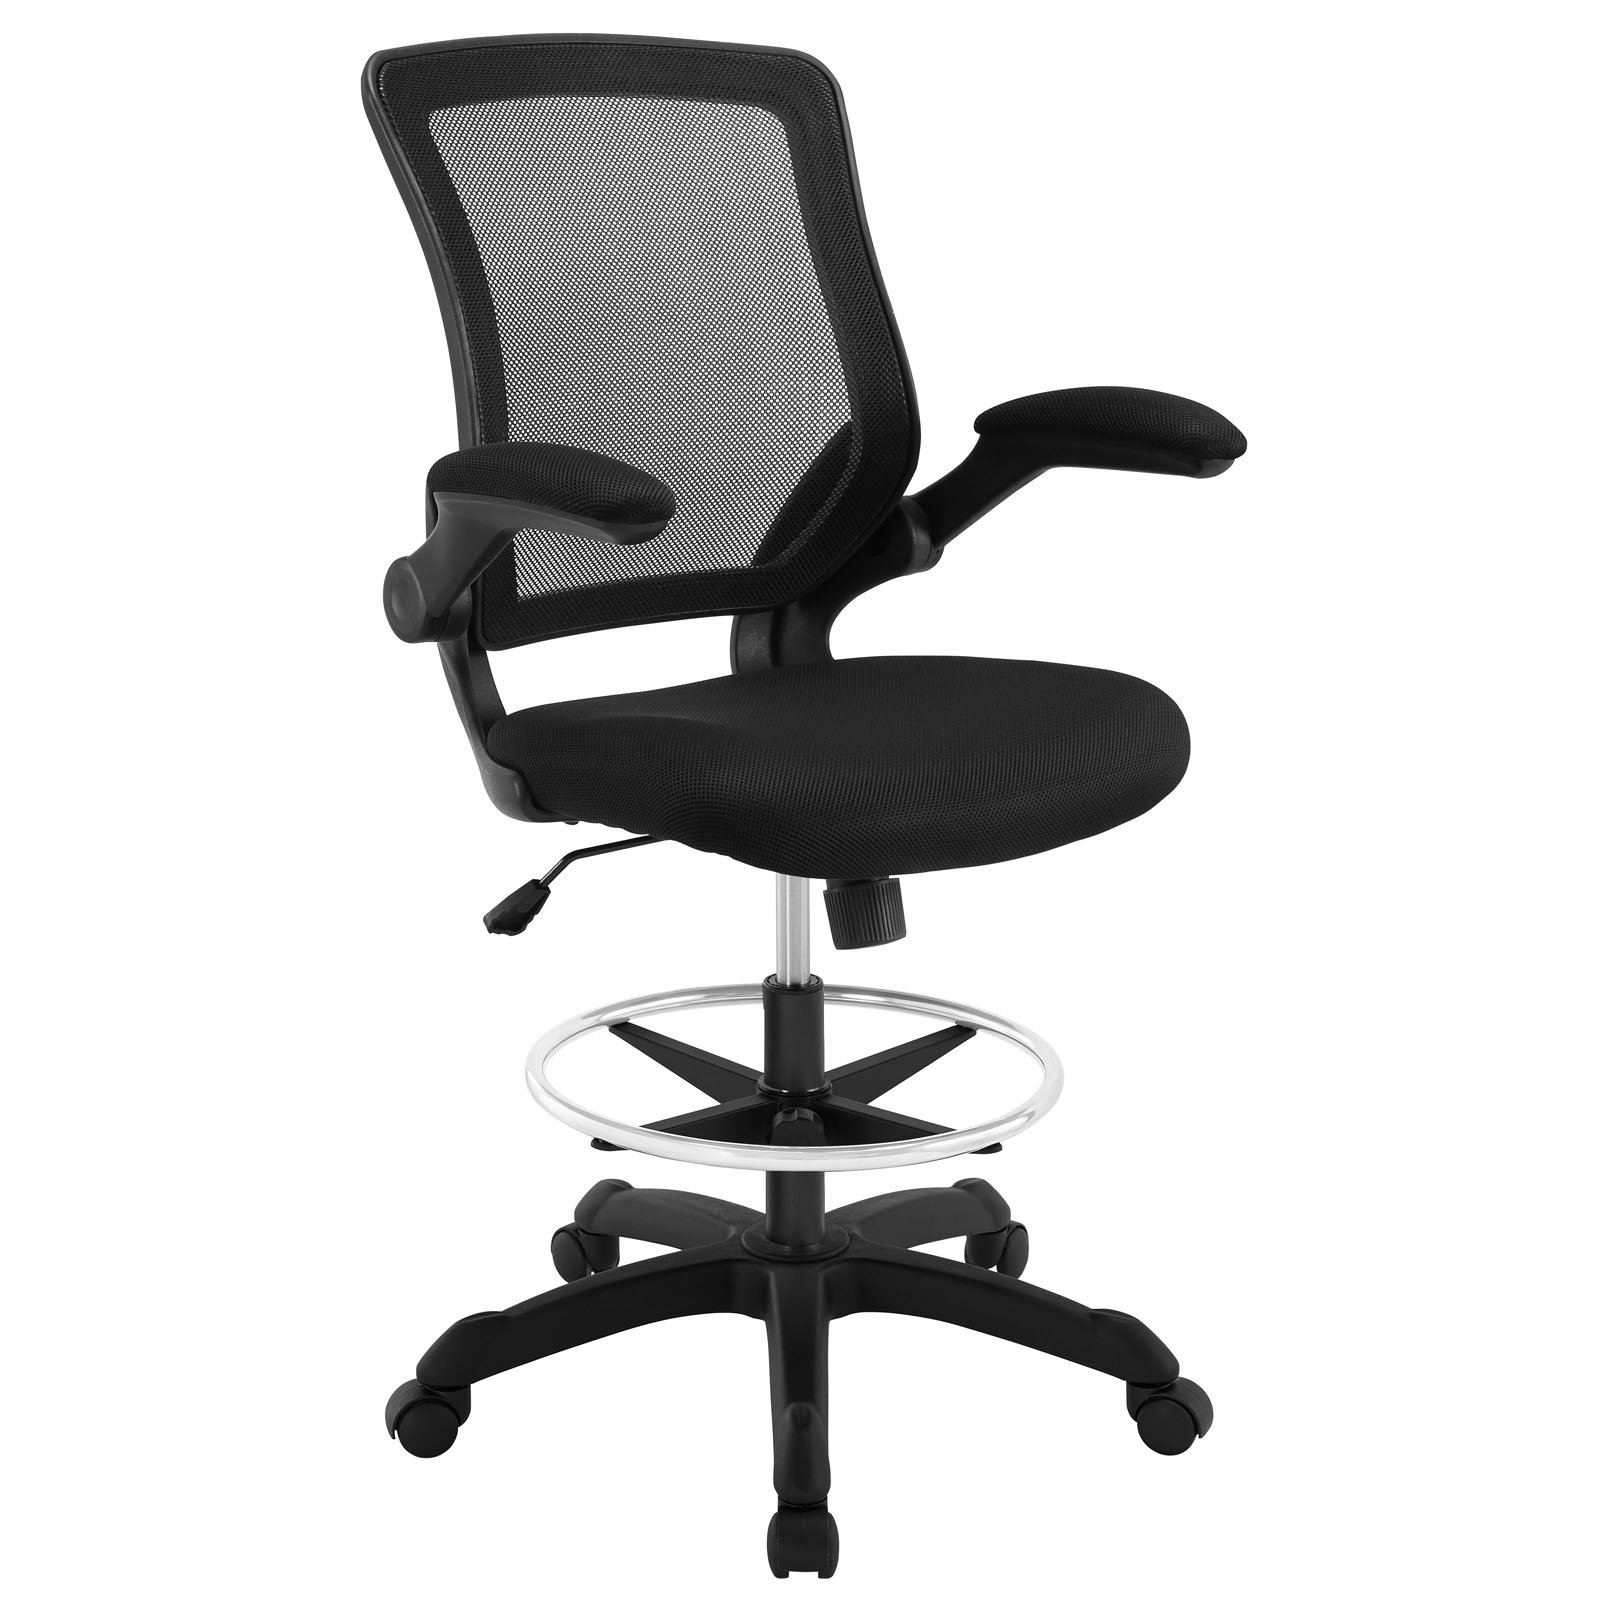 Modway Veer Drafting Chair In Black Mesh With Flip-Up Arms - Reception Desk Chair